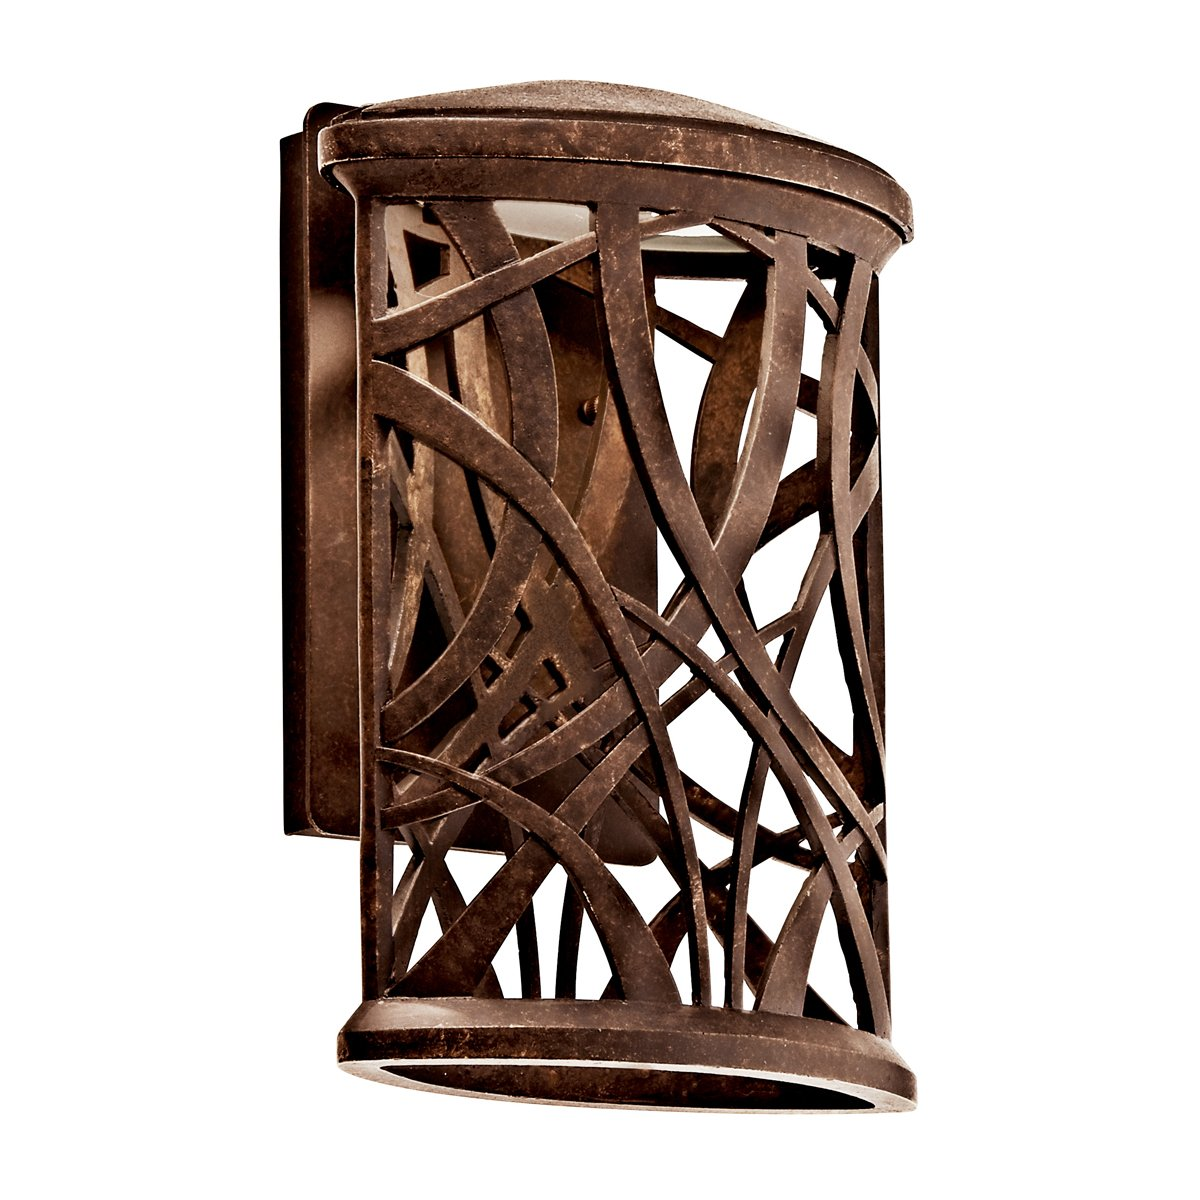 Outdoor led wall lantern olde bronze wall porch lights amazon com - Kichler 49248agzled Maya Palm Outdoor Wall Led Light Aged Bronze Wall Porch Lights Amazon Com